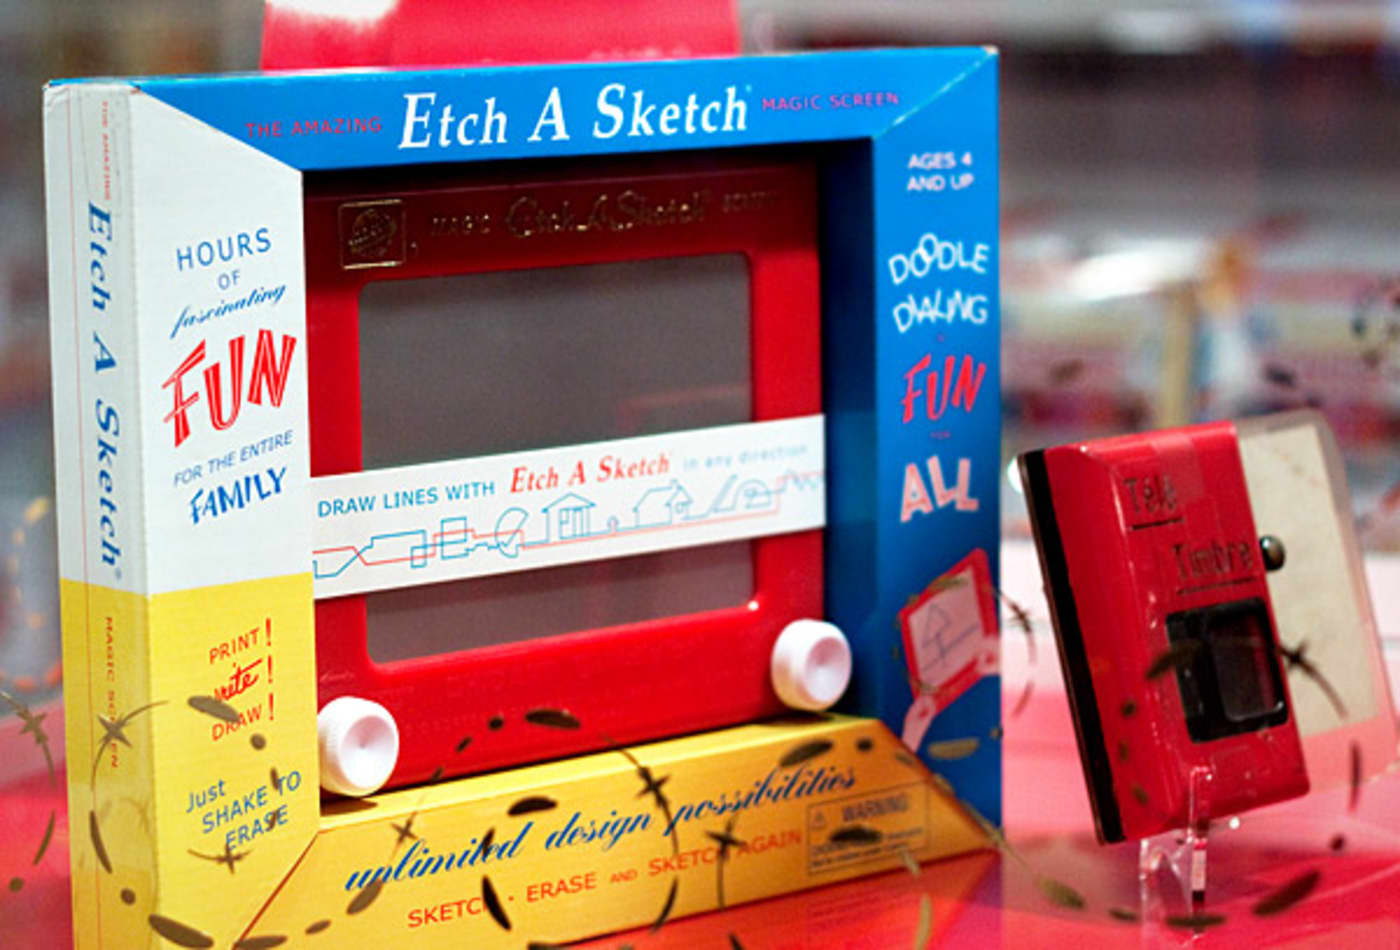 CNBC-FAO-toys-Etchasketch.jpg